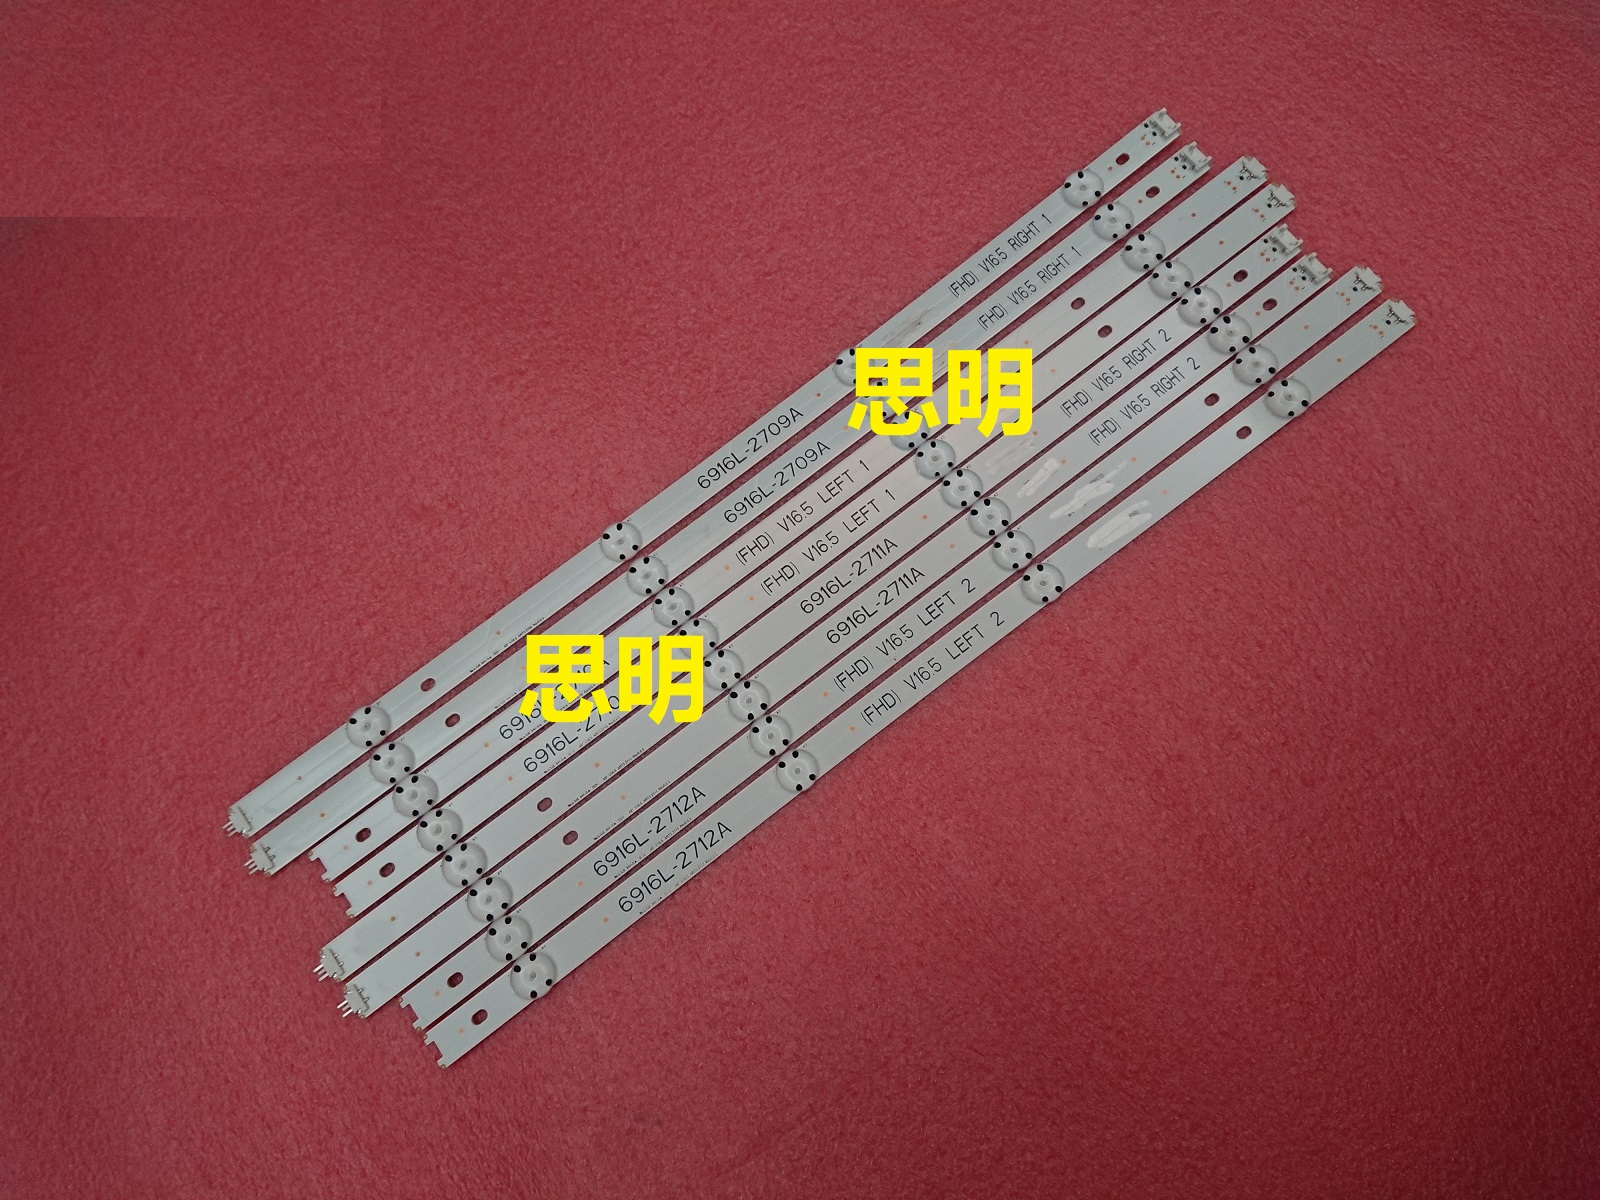 6916L-2709A 6916L-2710A 6916L-2711A 6916L-2712A LED STRIP 8PCS/SET